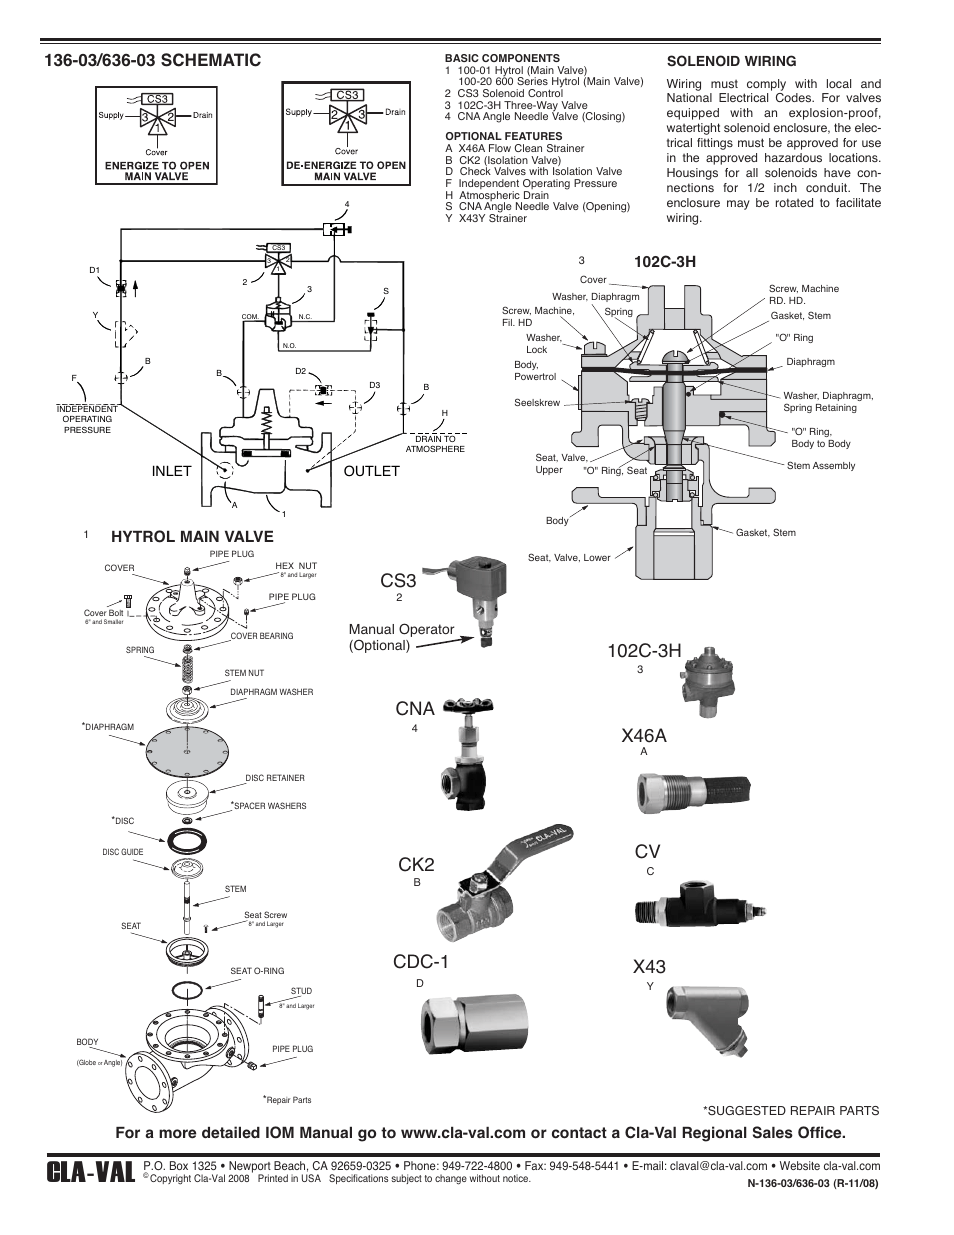 Whelen Tir3 Wiring Diagram : 26 Wiring Diagram Images